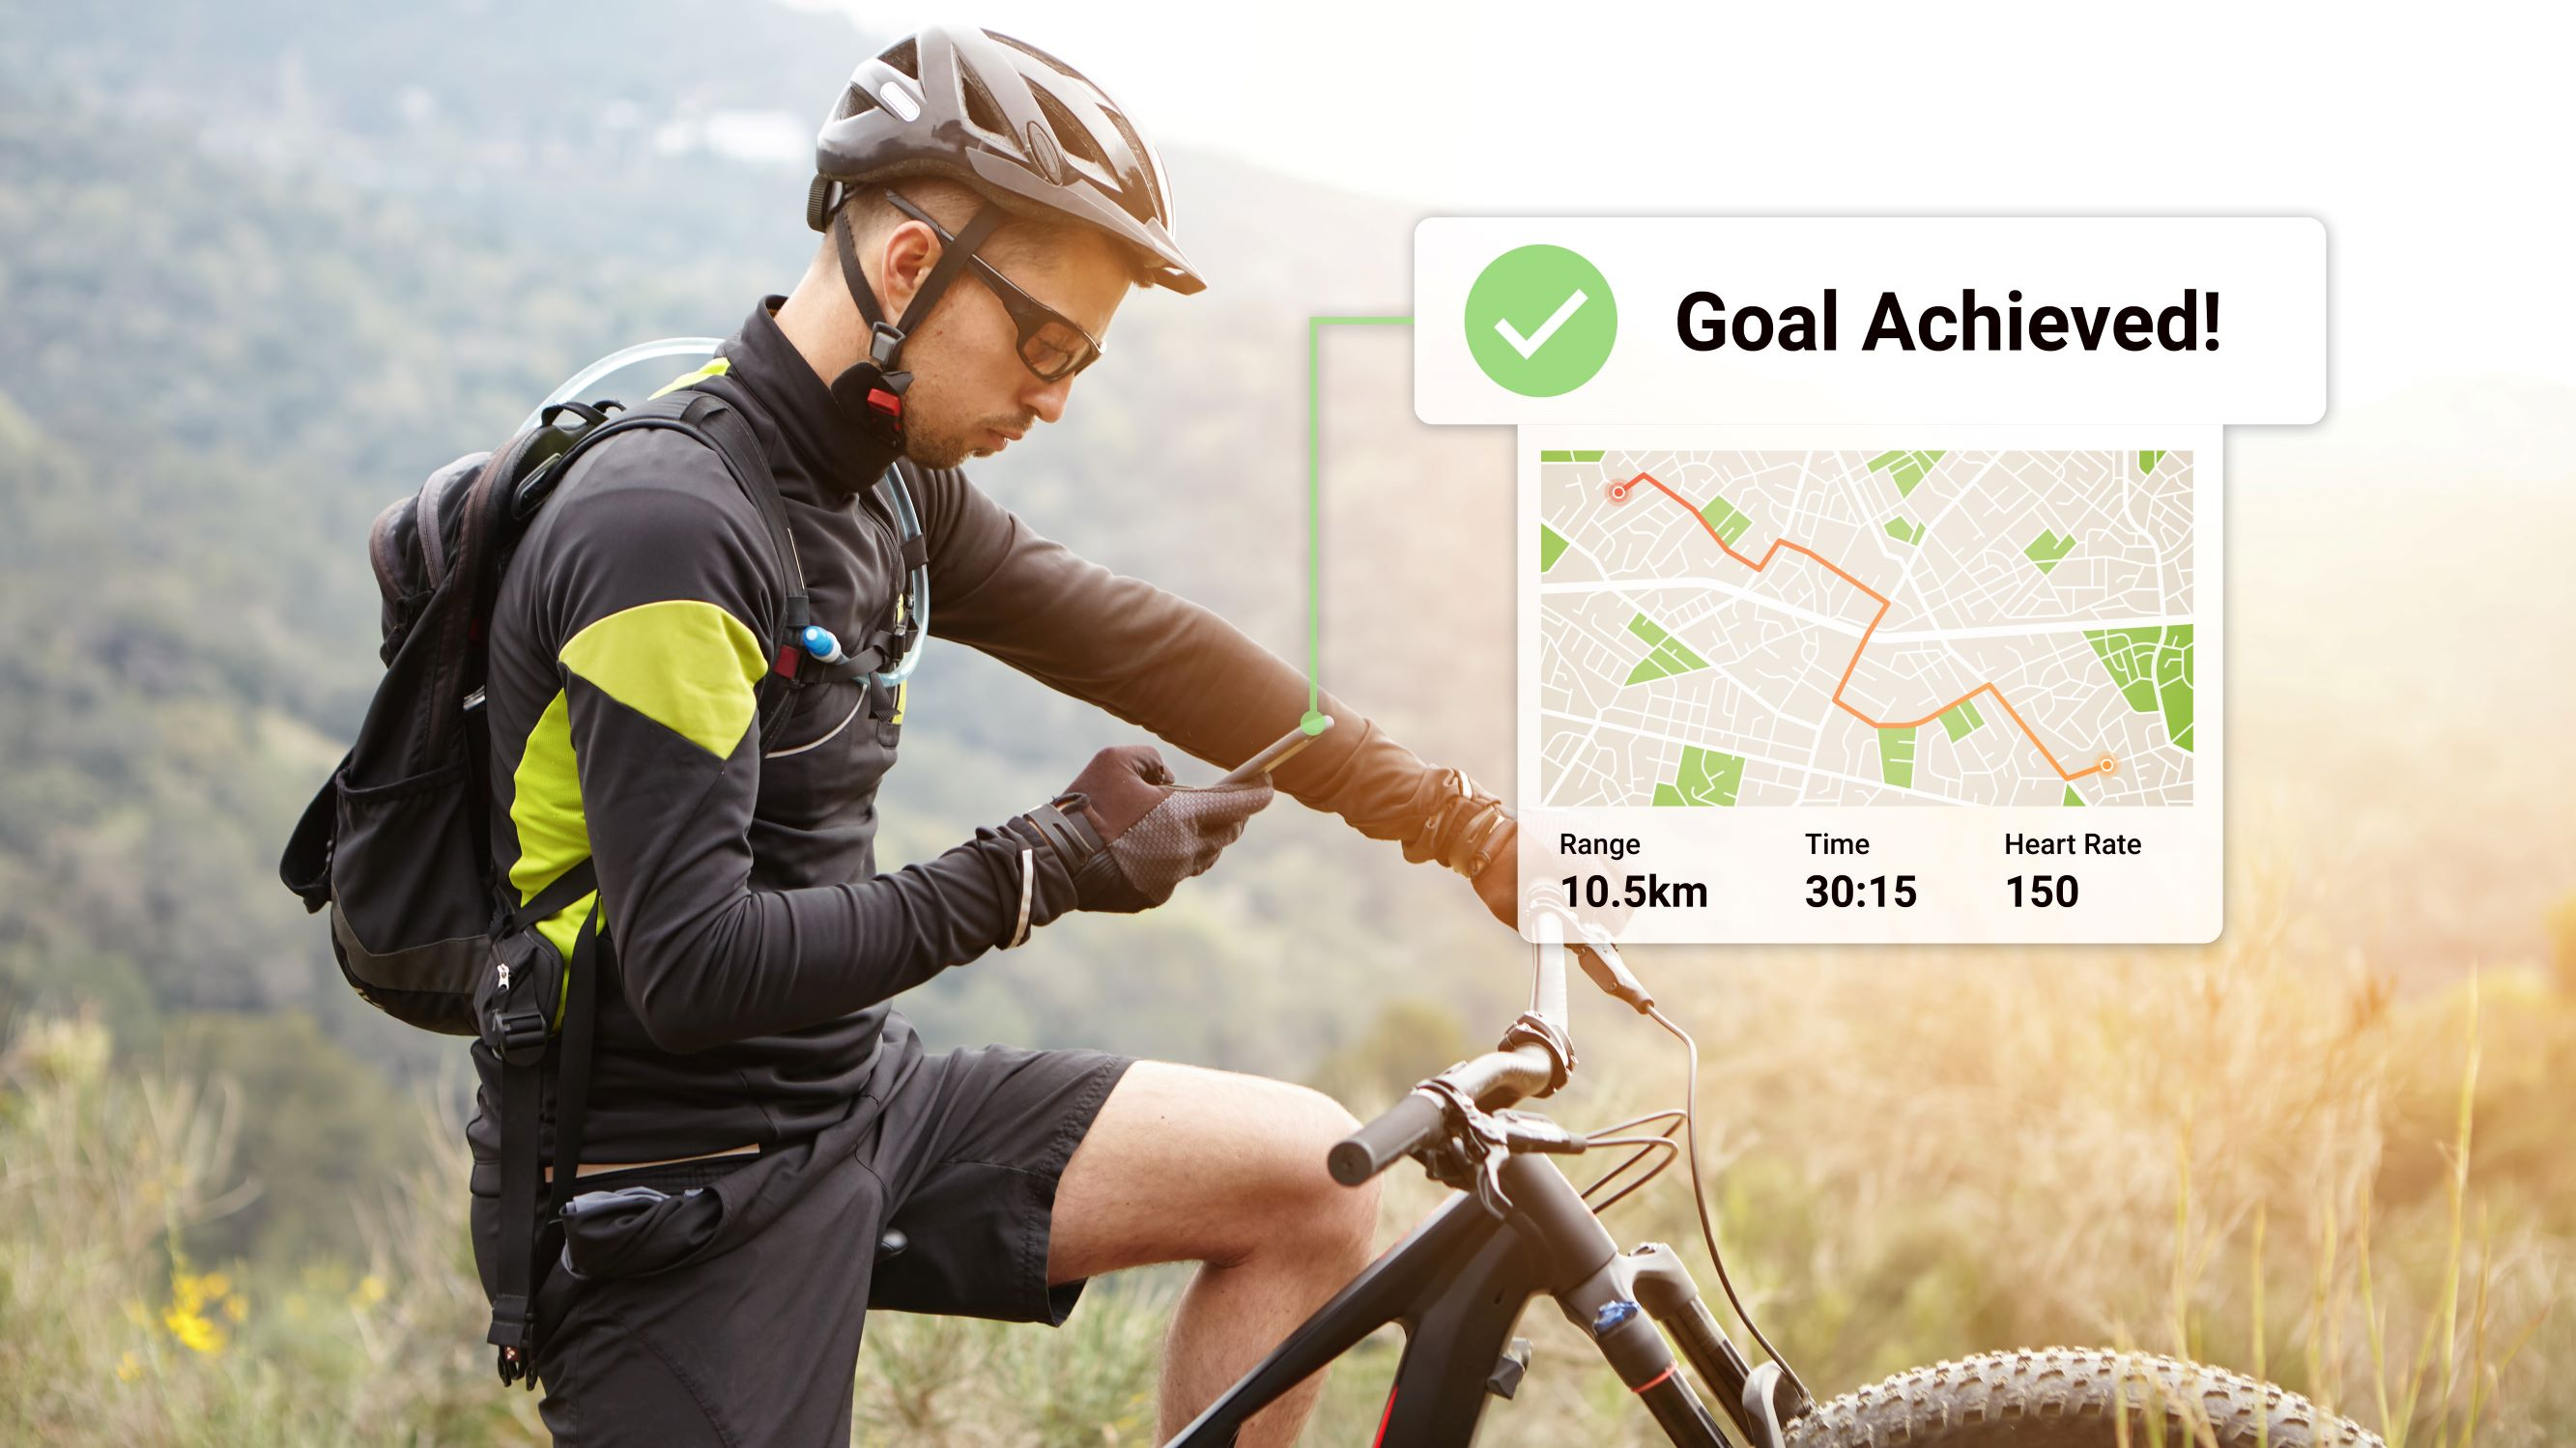 Achievements in Fitness Apps